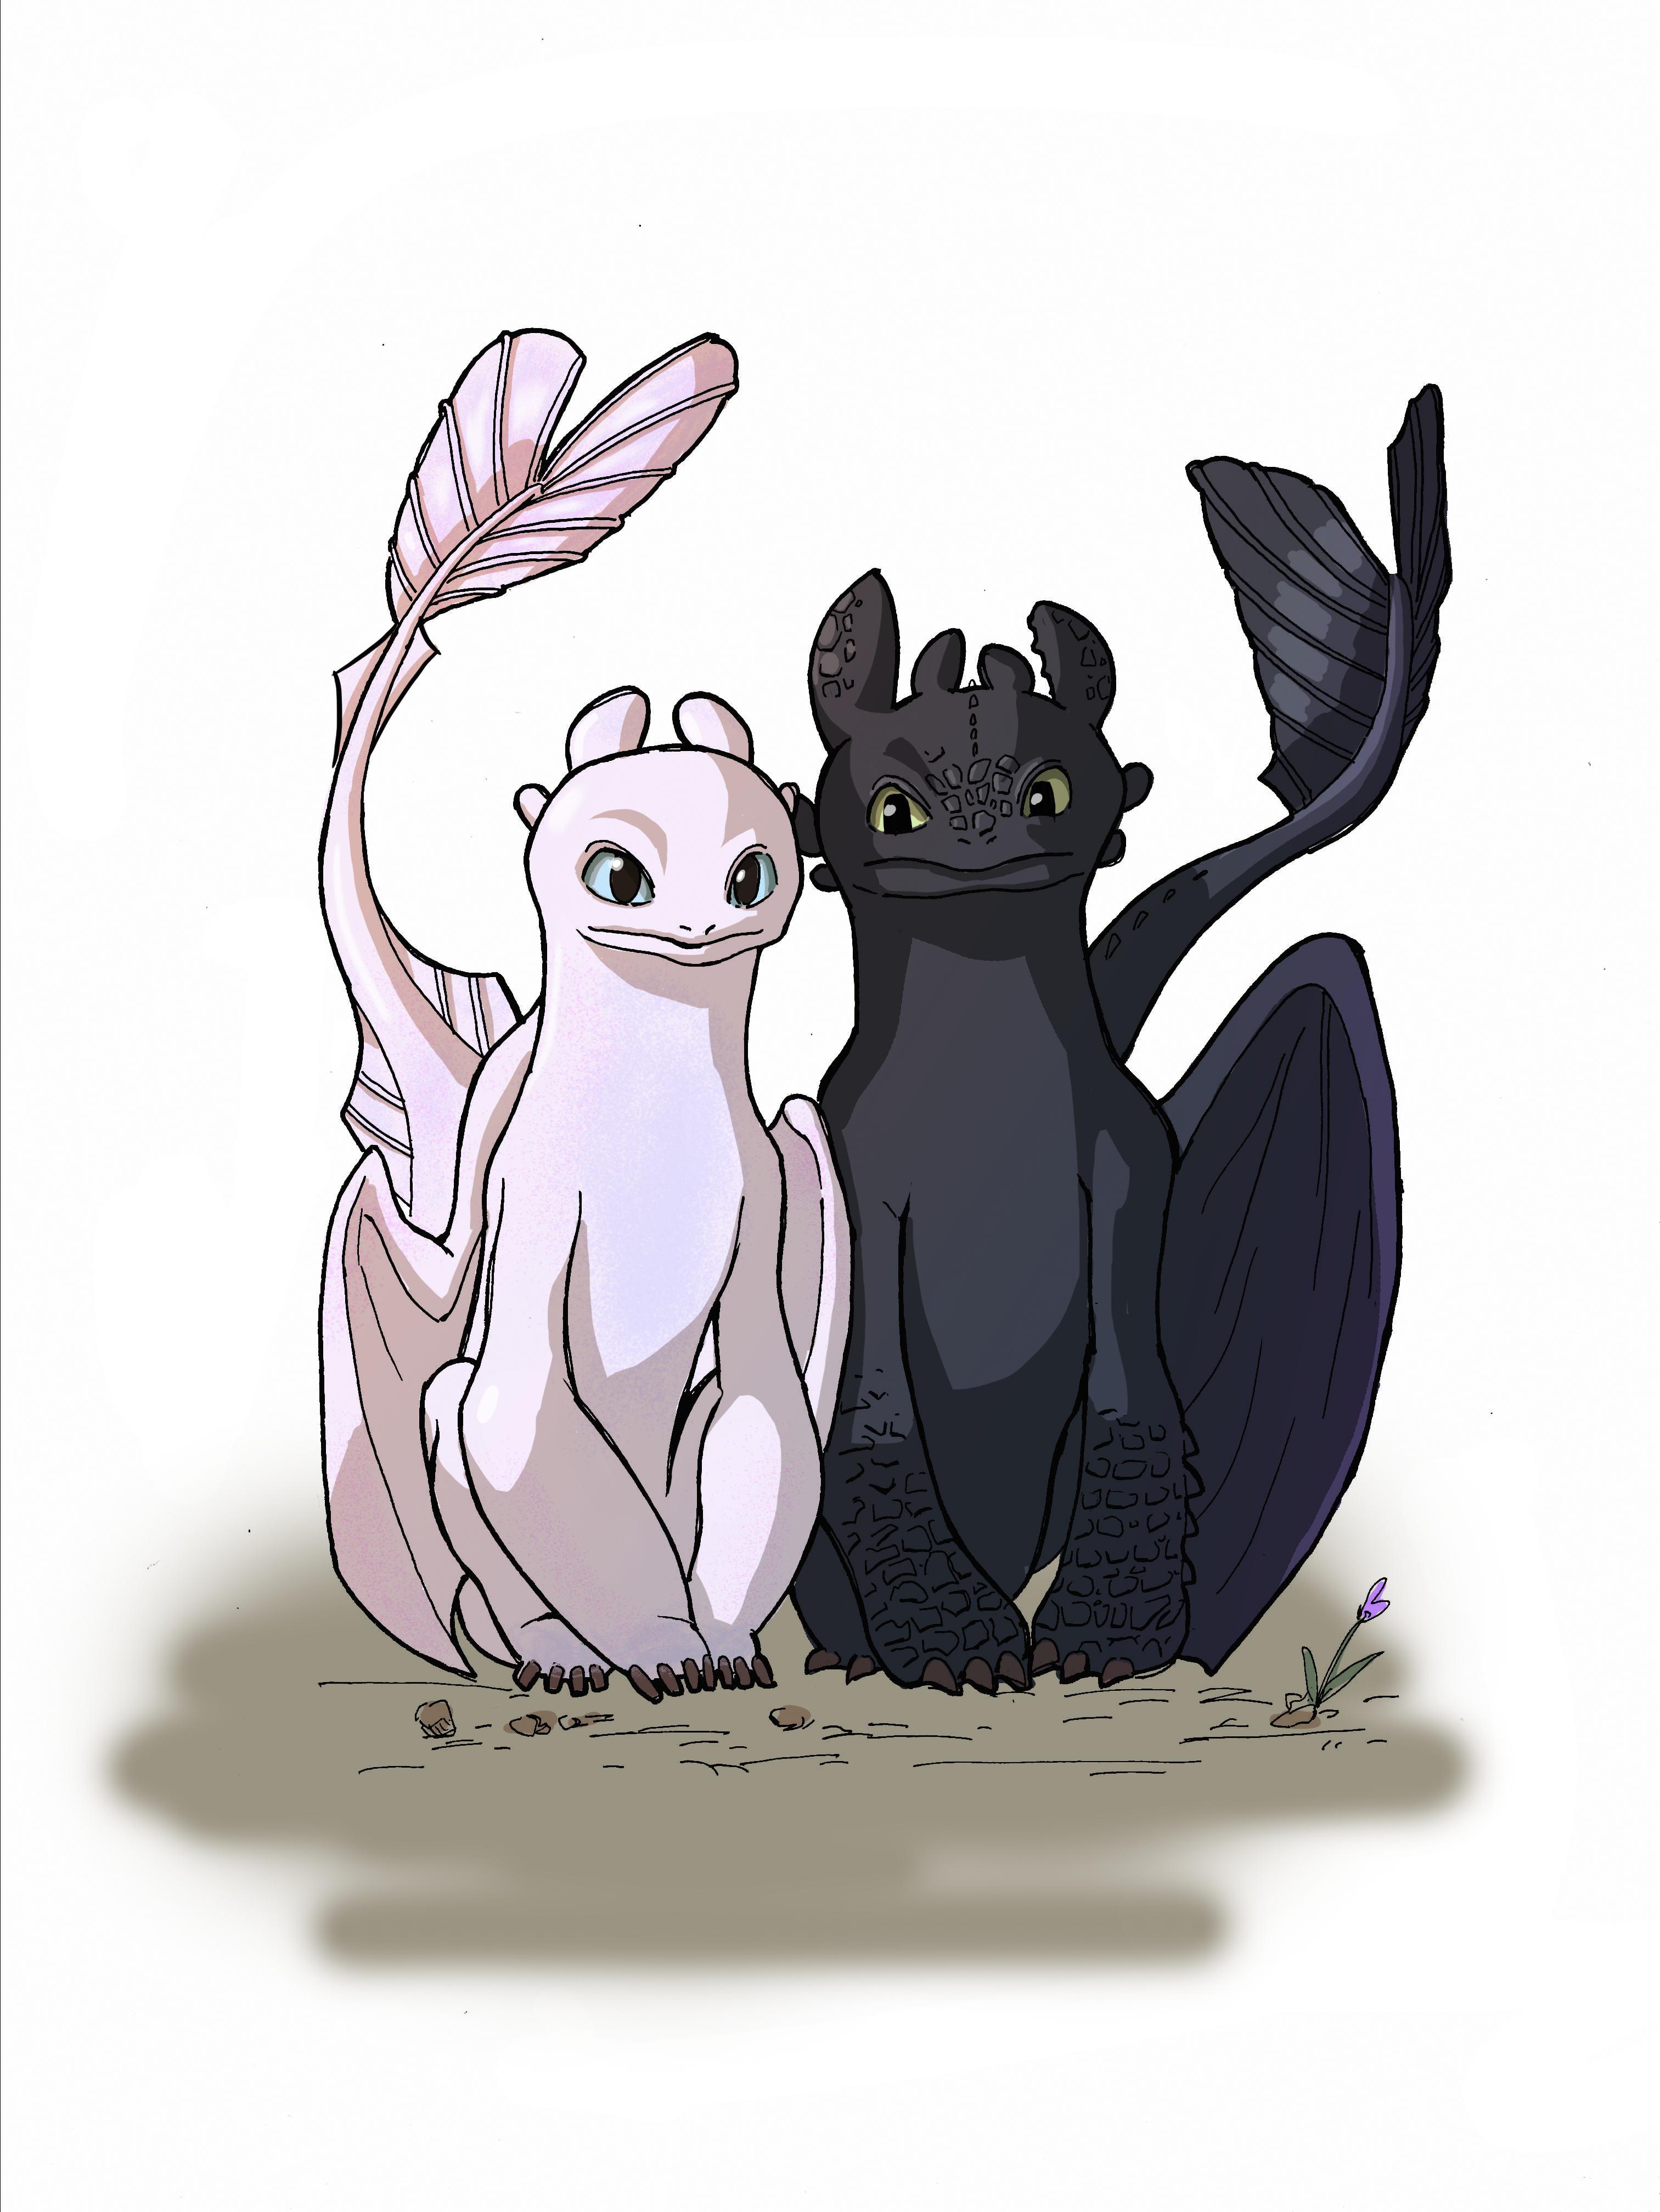 Cute Toothless And Light Fury : toothless, light, Train, Dragon, Toothless, Lightfury, Drawing, #howtotrainyourdragon3, #toothless, #드래곤길들…, Dragon,